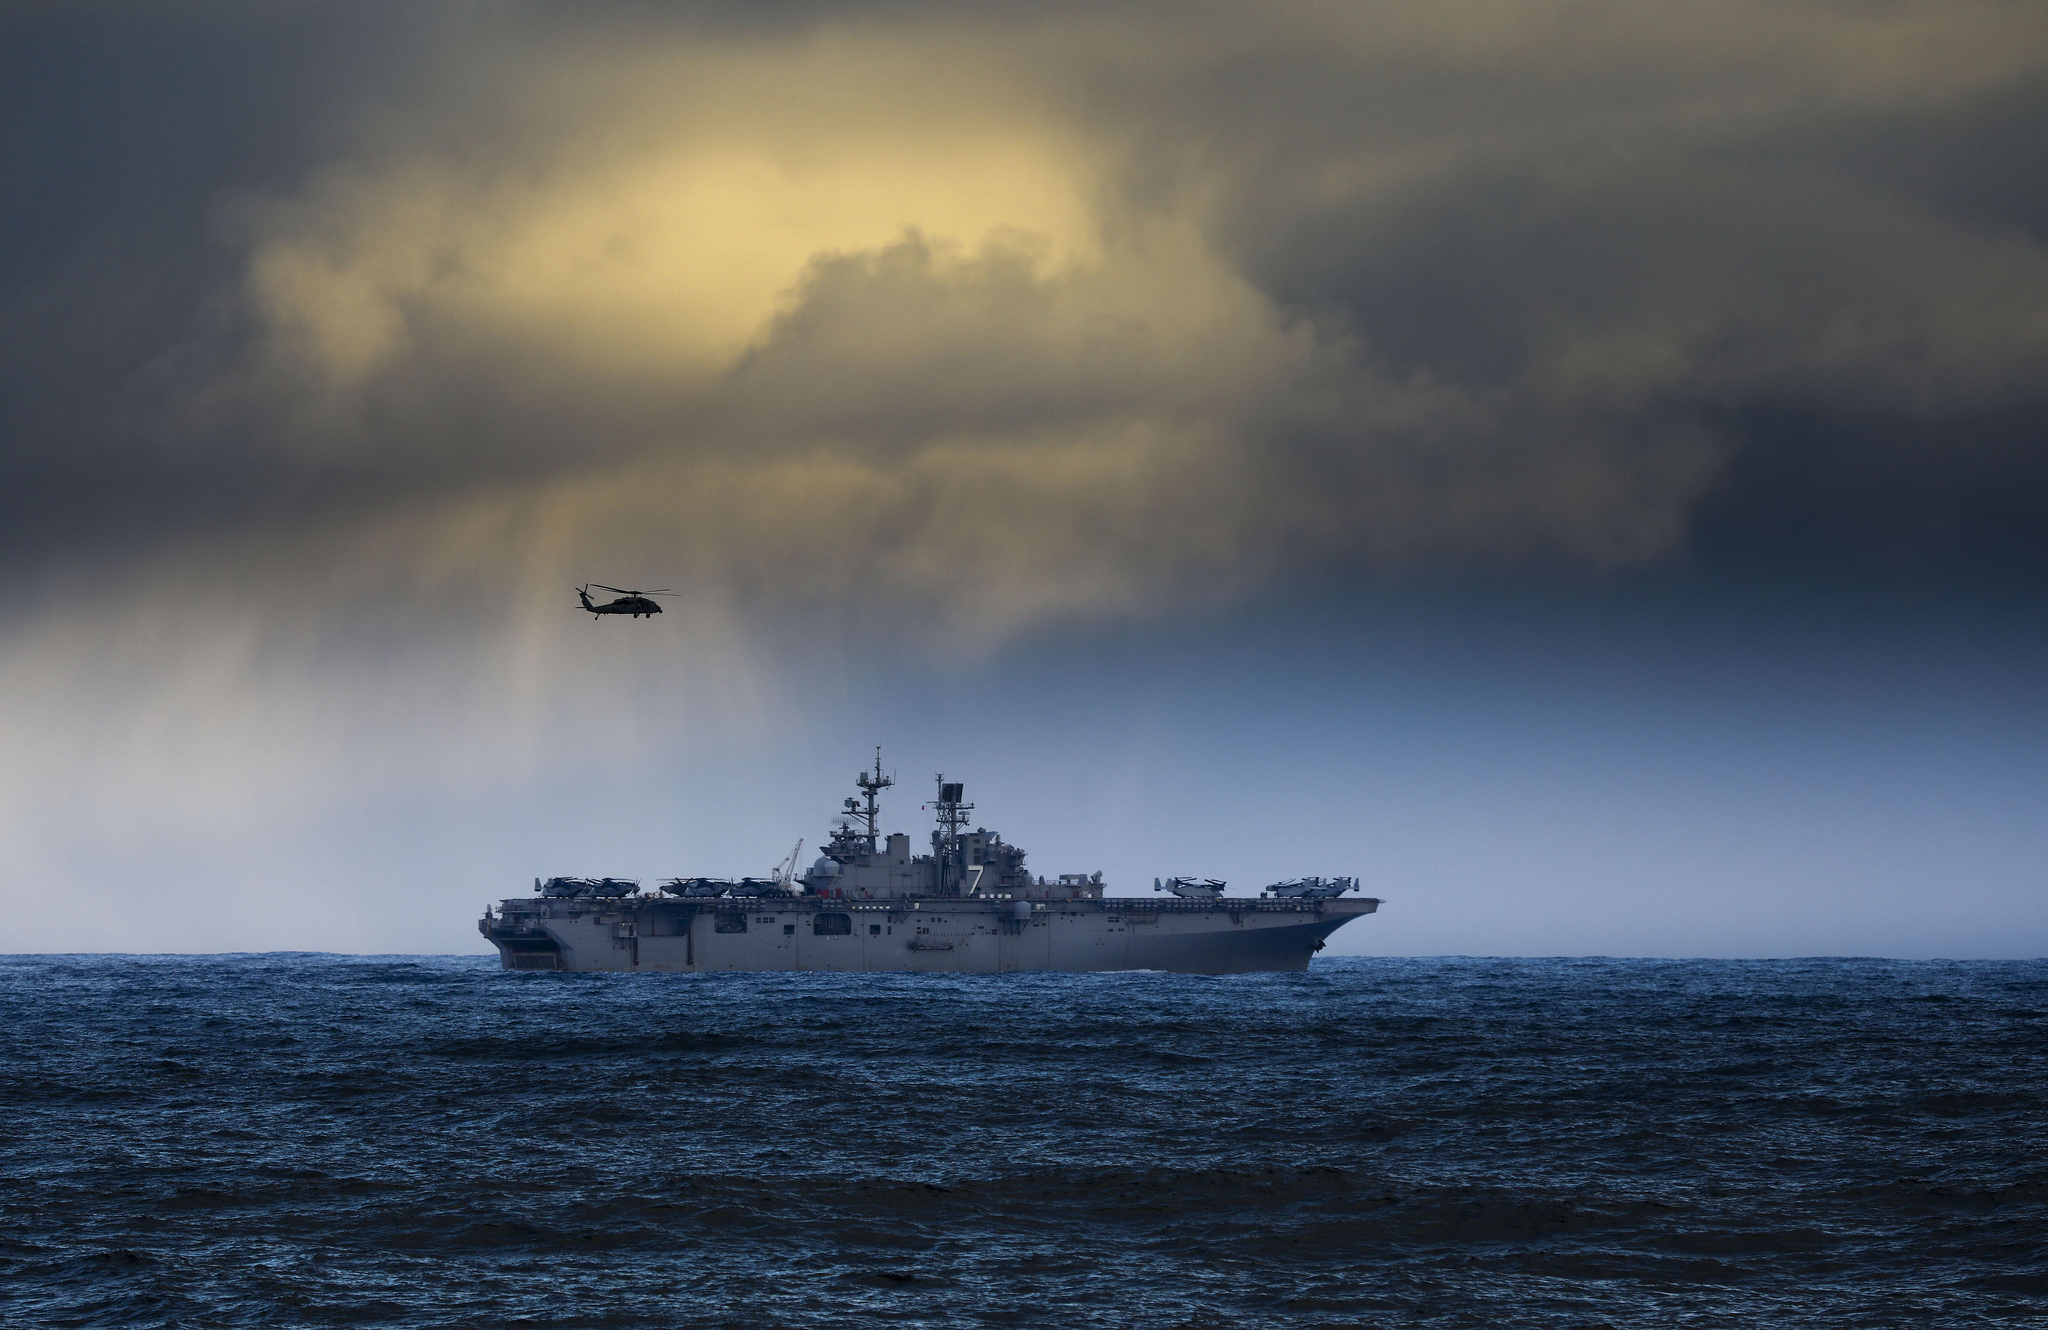 The U.S. Navy amphibious assault ship USS Iwo Jima, part of a NATO task force, sails near Iceland on Oct. 23, 2018, carrying elements of 45 Commando Royal Marines and U.S. Marines traveling to NATO exercise Trident Juncture 2018. (NATO)